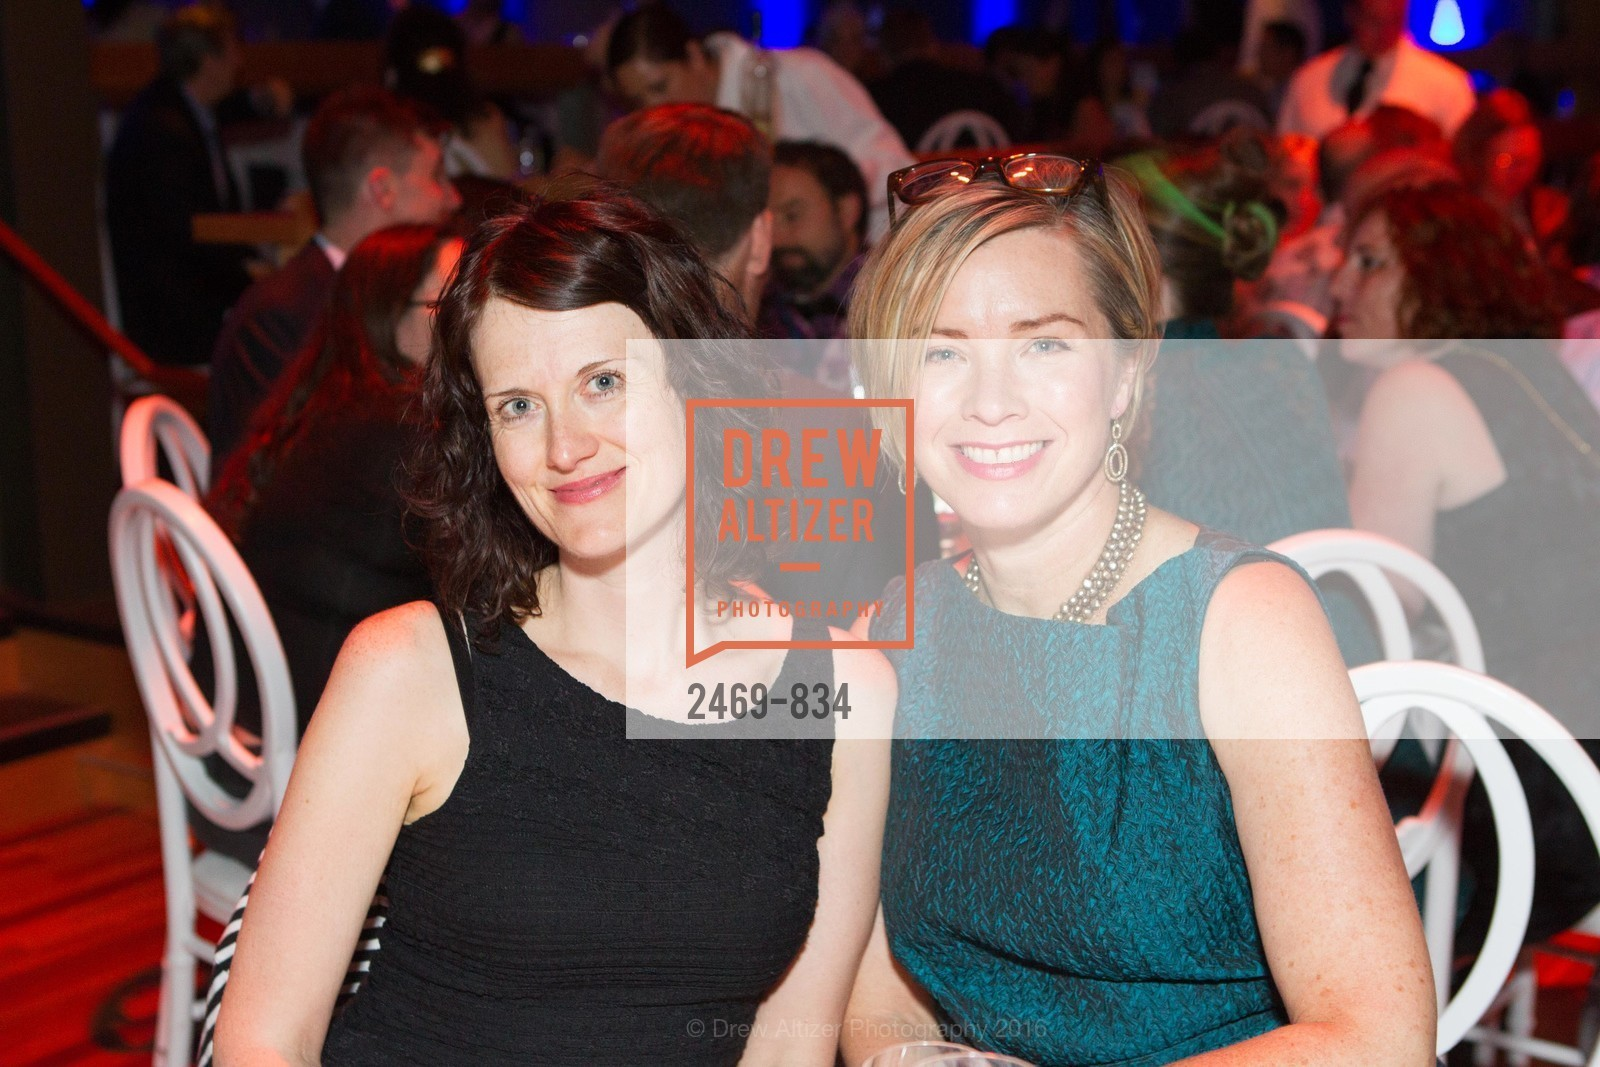 Melanie Edlin, Leeanne Haglund, Exploratorium Spring Gala, Exploratorium, 140515, May 15th, 2014,Drew Altizer, Drew Altizer Photography, full-service agency, private events, San Francisco photographer, photographer california